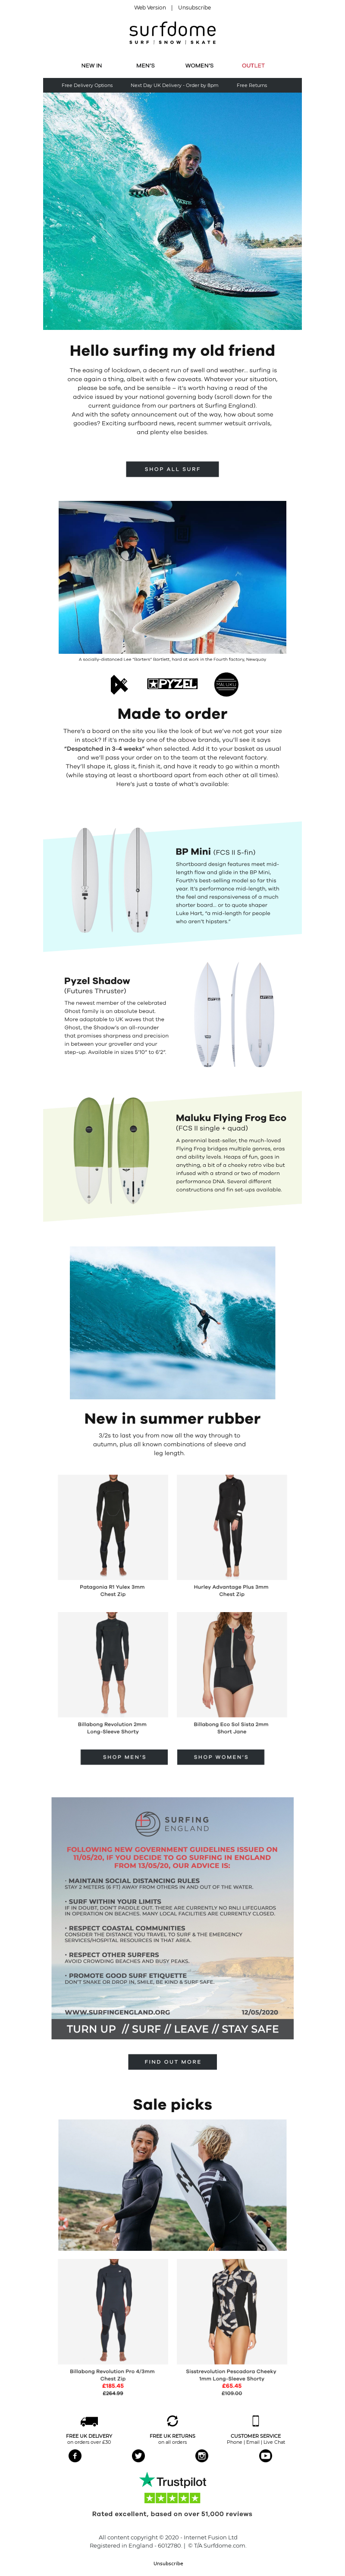 Web Version | Unsubscribe Hello surfing my old friend Made to order BP Mini